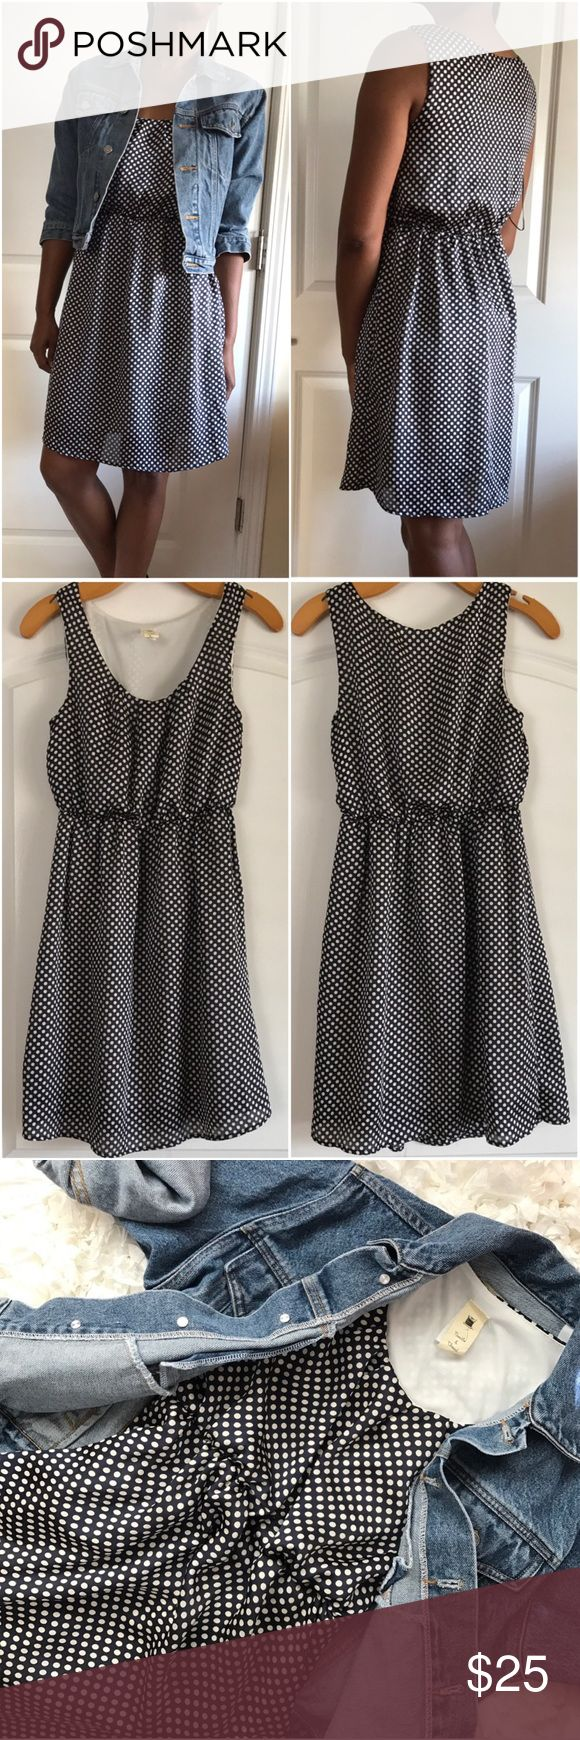 """Needle & Thread Anthropologie Polka Dot Sheath Blue and white skater dress with elastic cinched waist. Polka dot print on satin material.  Belt is not included. Length is 35.5"""", Pit to pit 17.5"""", across waist 11"""" ( has elastic band for stretch. Anthropologie Dresses Mini"""